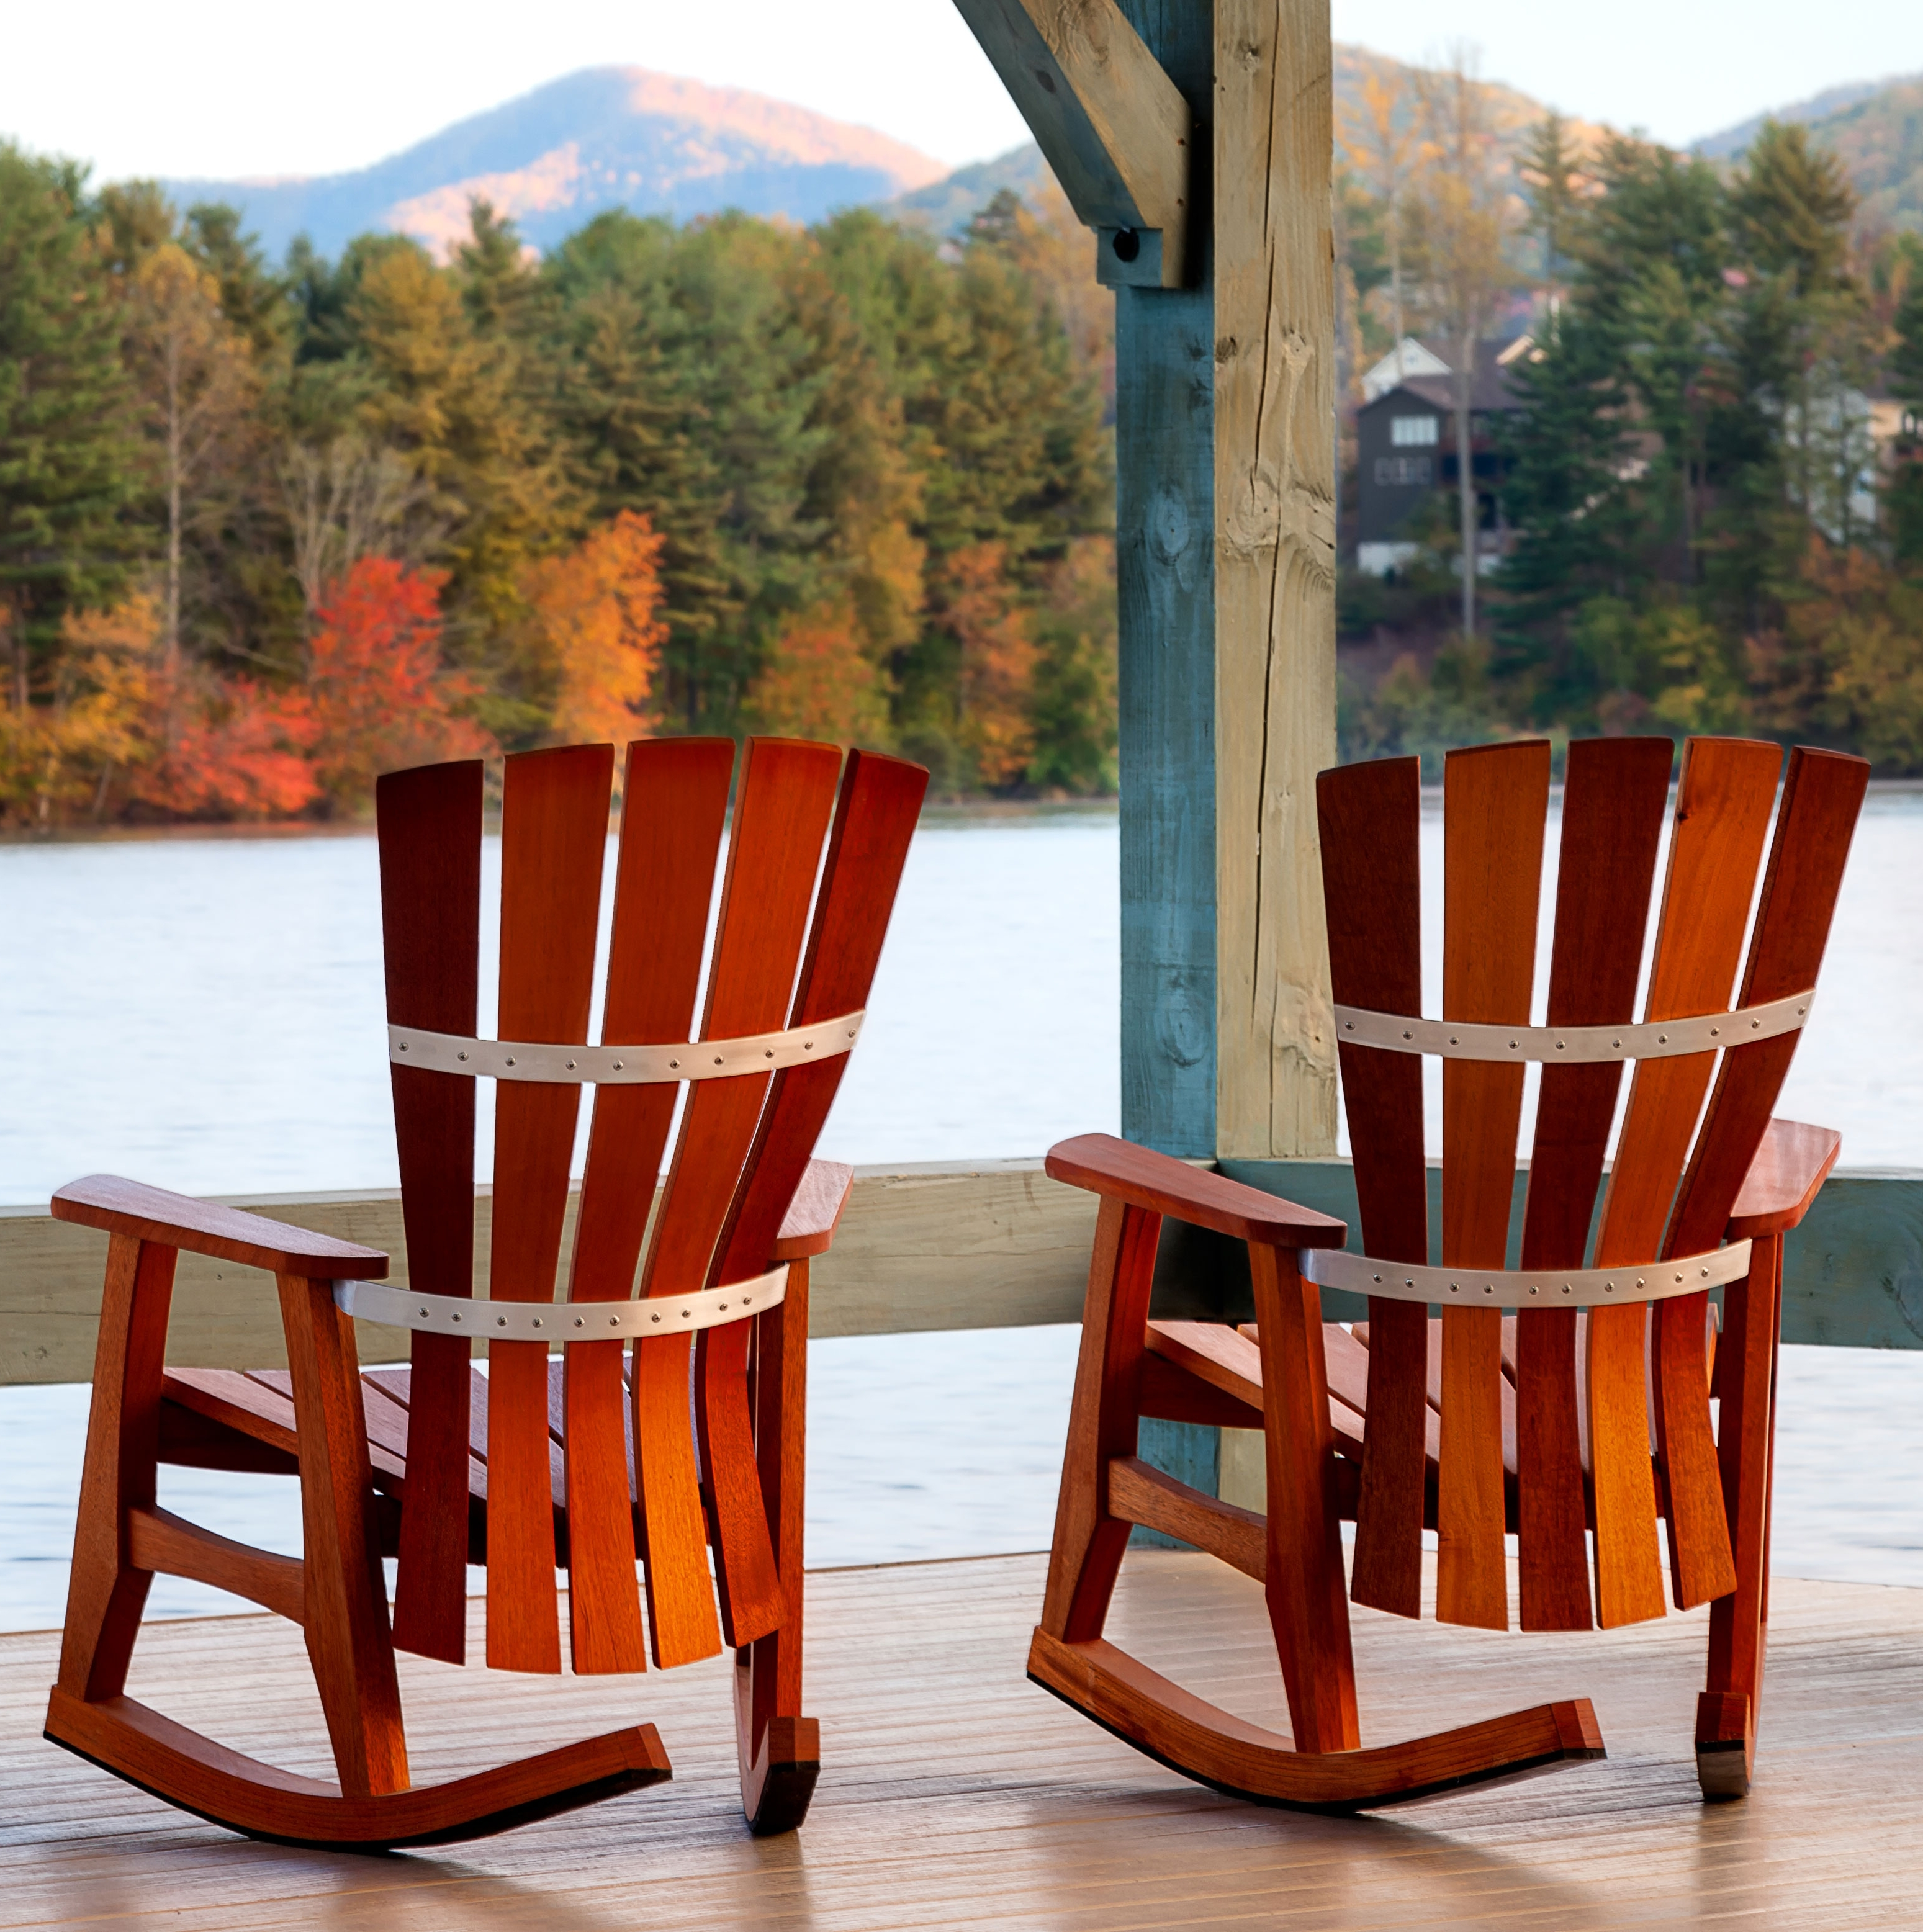 Patio Furniture Rocking Chair Fibreglass Iron And Birch Material Intended For Trendy All Weather Patio Rocking Chairs (View 9 of 20)